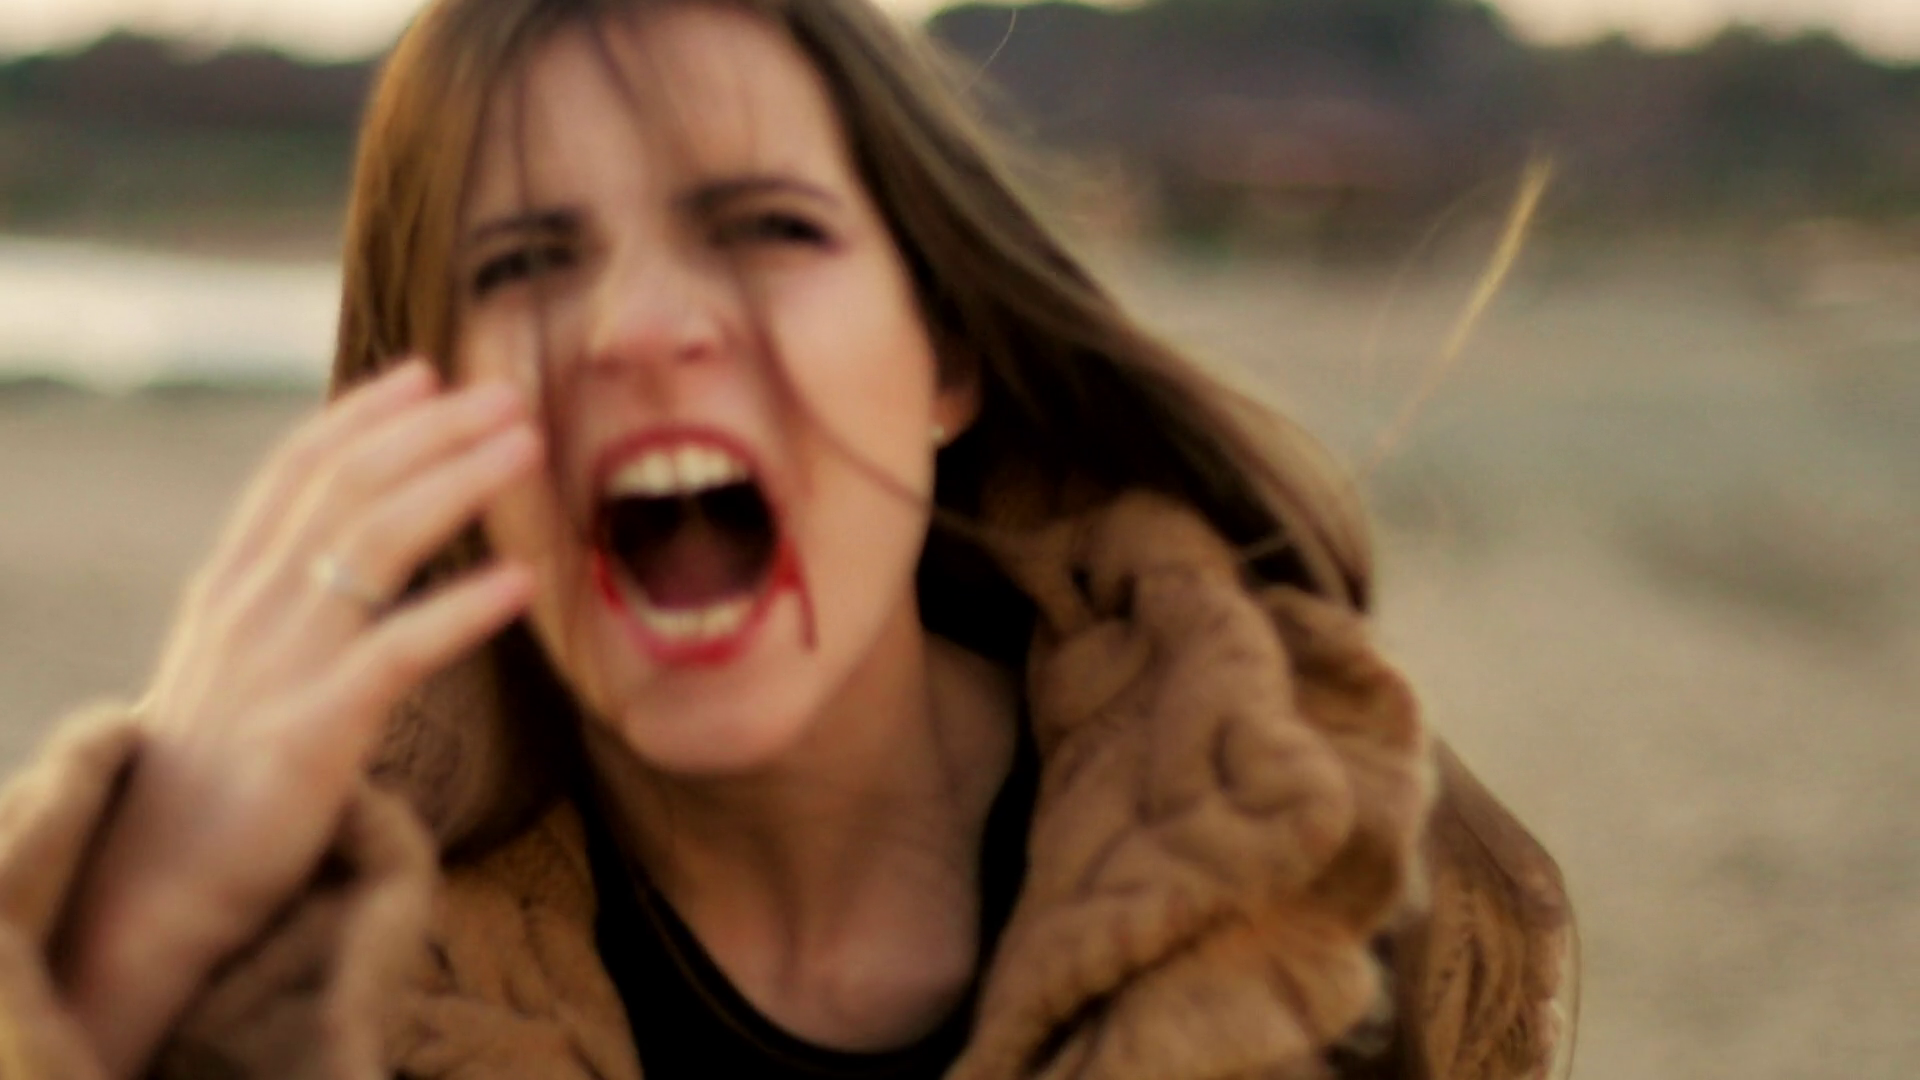 Scared Woman Running Screaming PNG - 165056